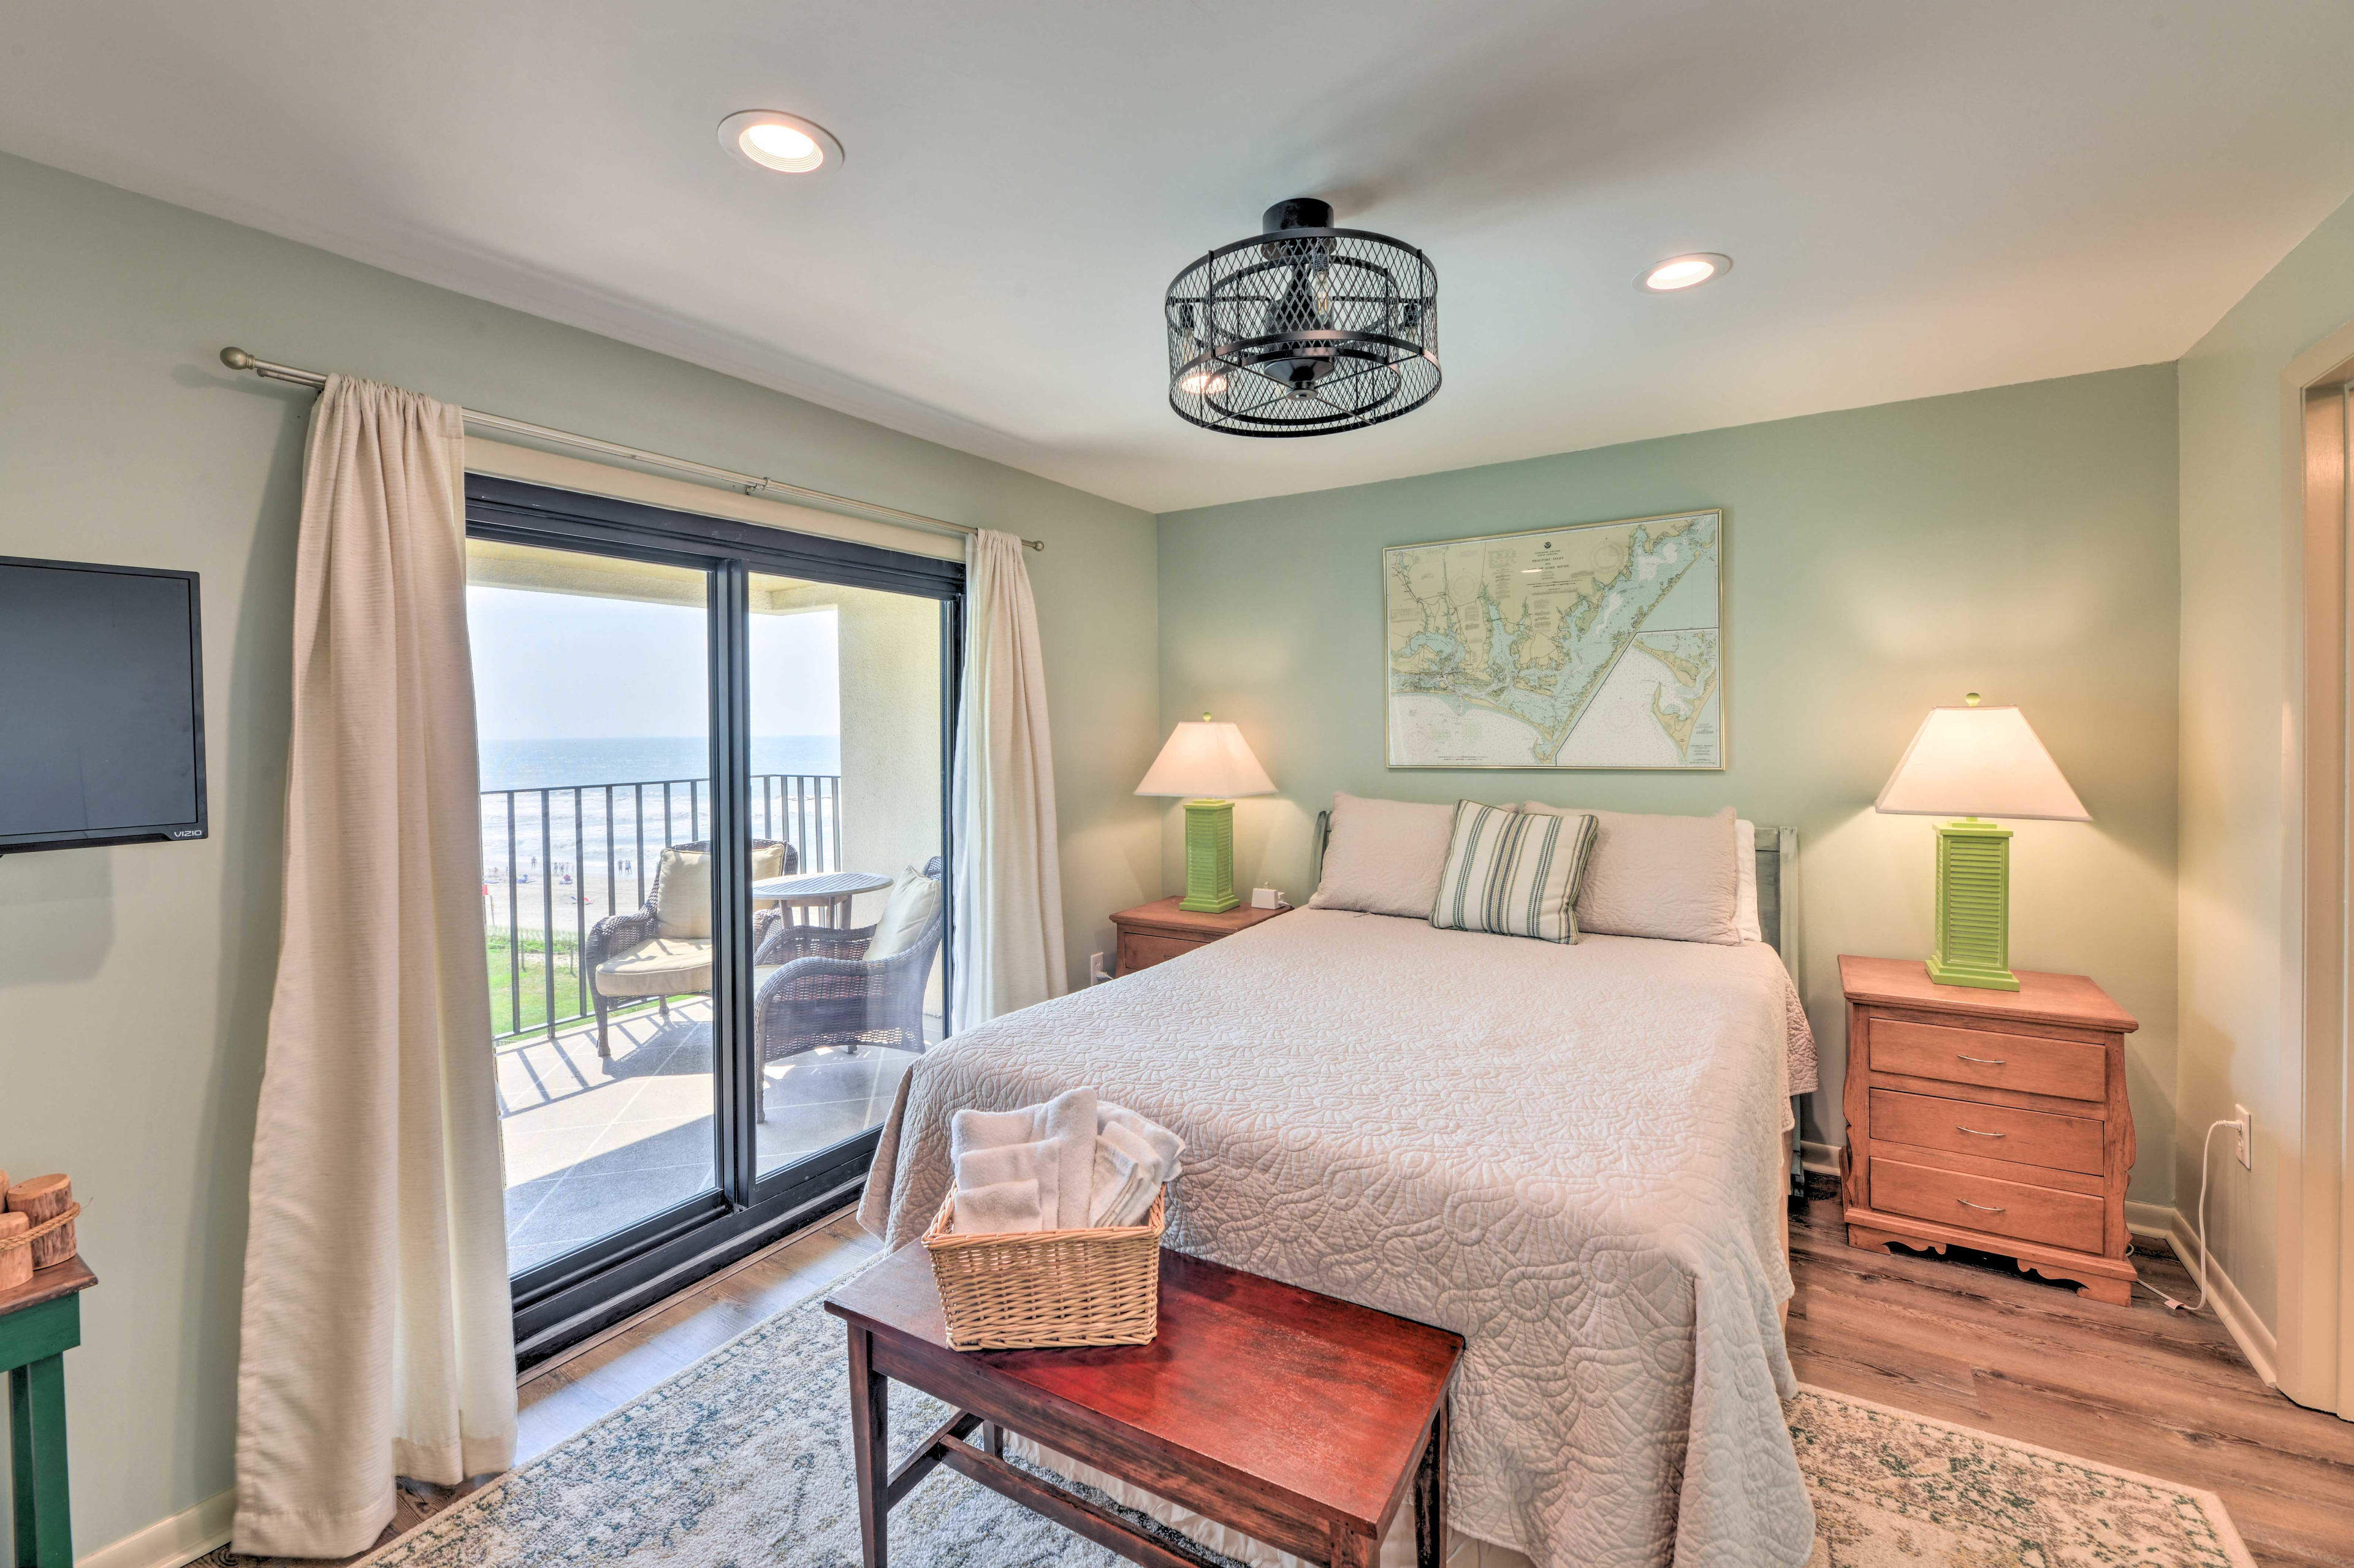 The master bedroom has a queen-sized bed and private balcony access.